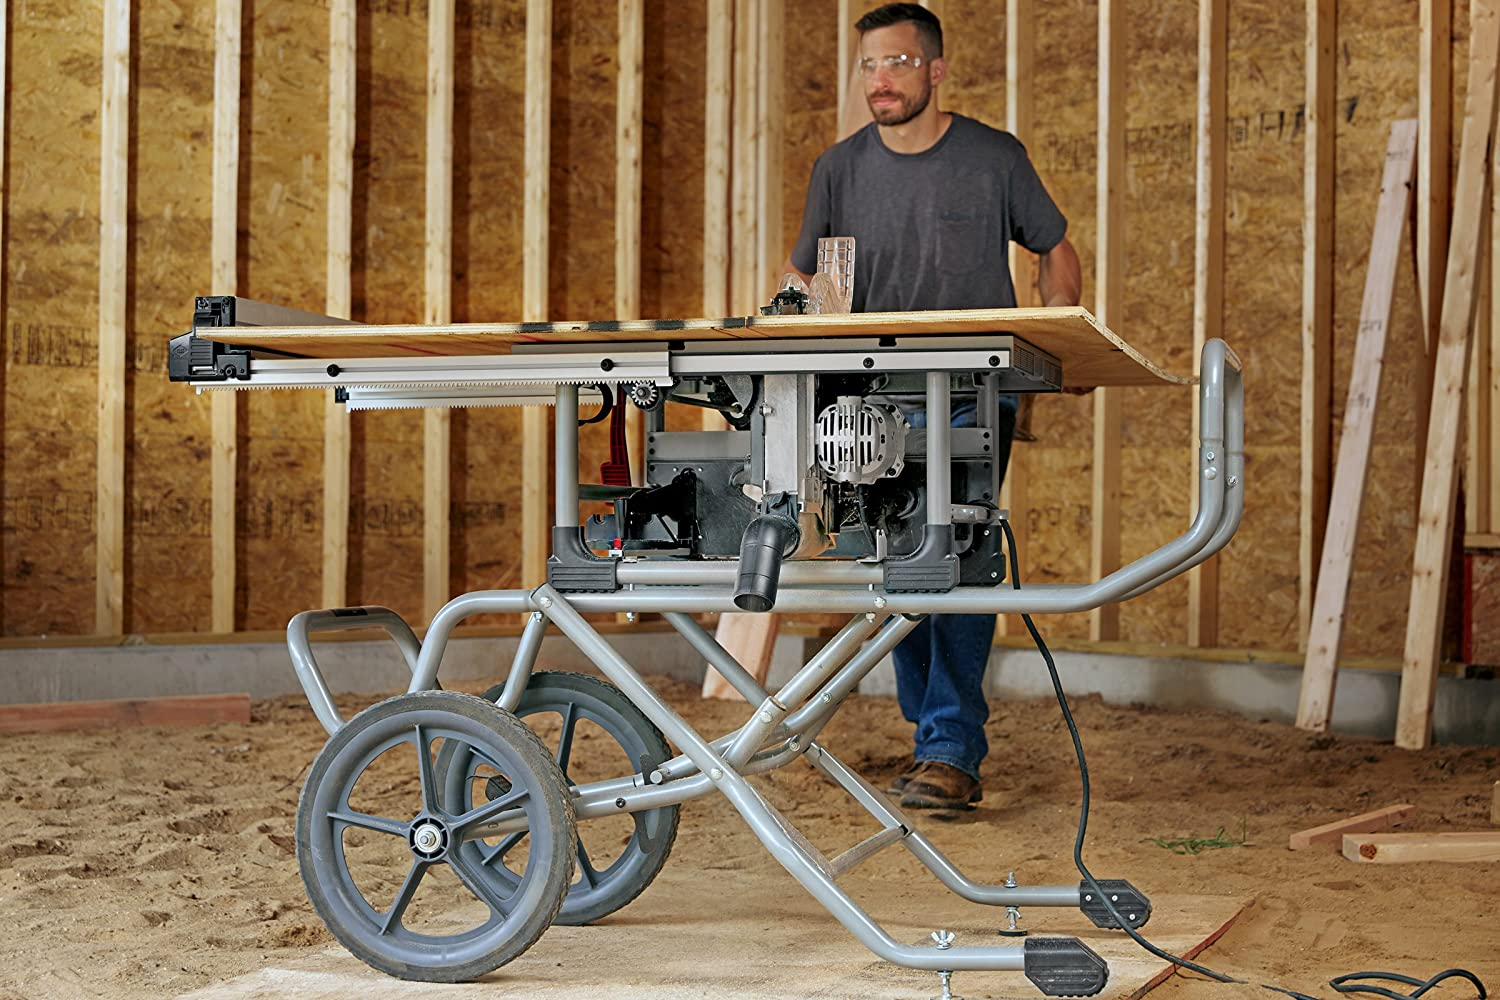 SKILSAW SPT99-11 Table Saws product image 7